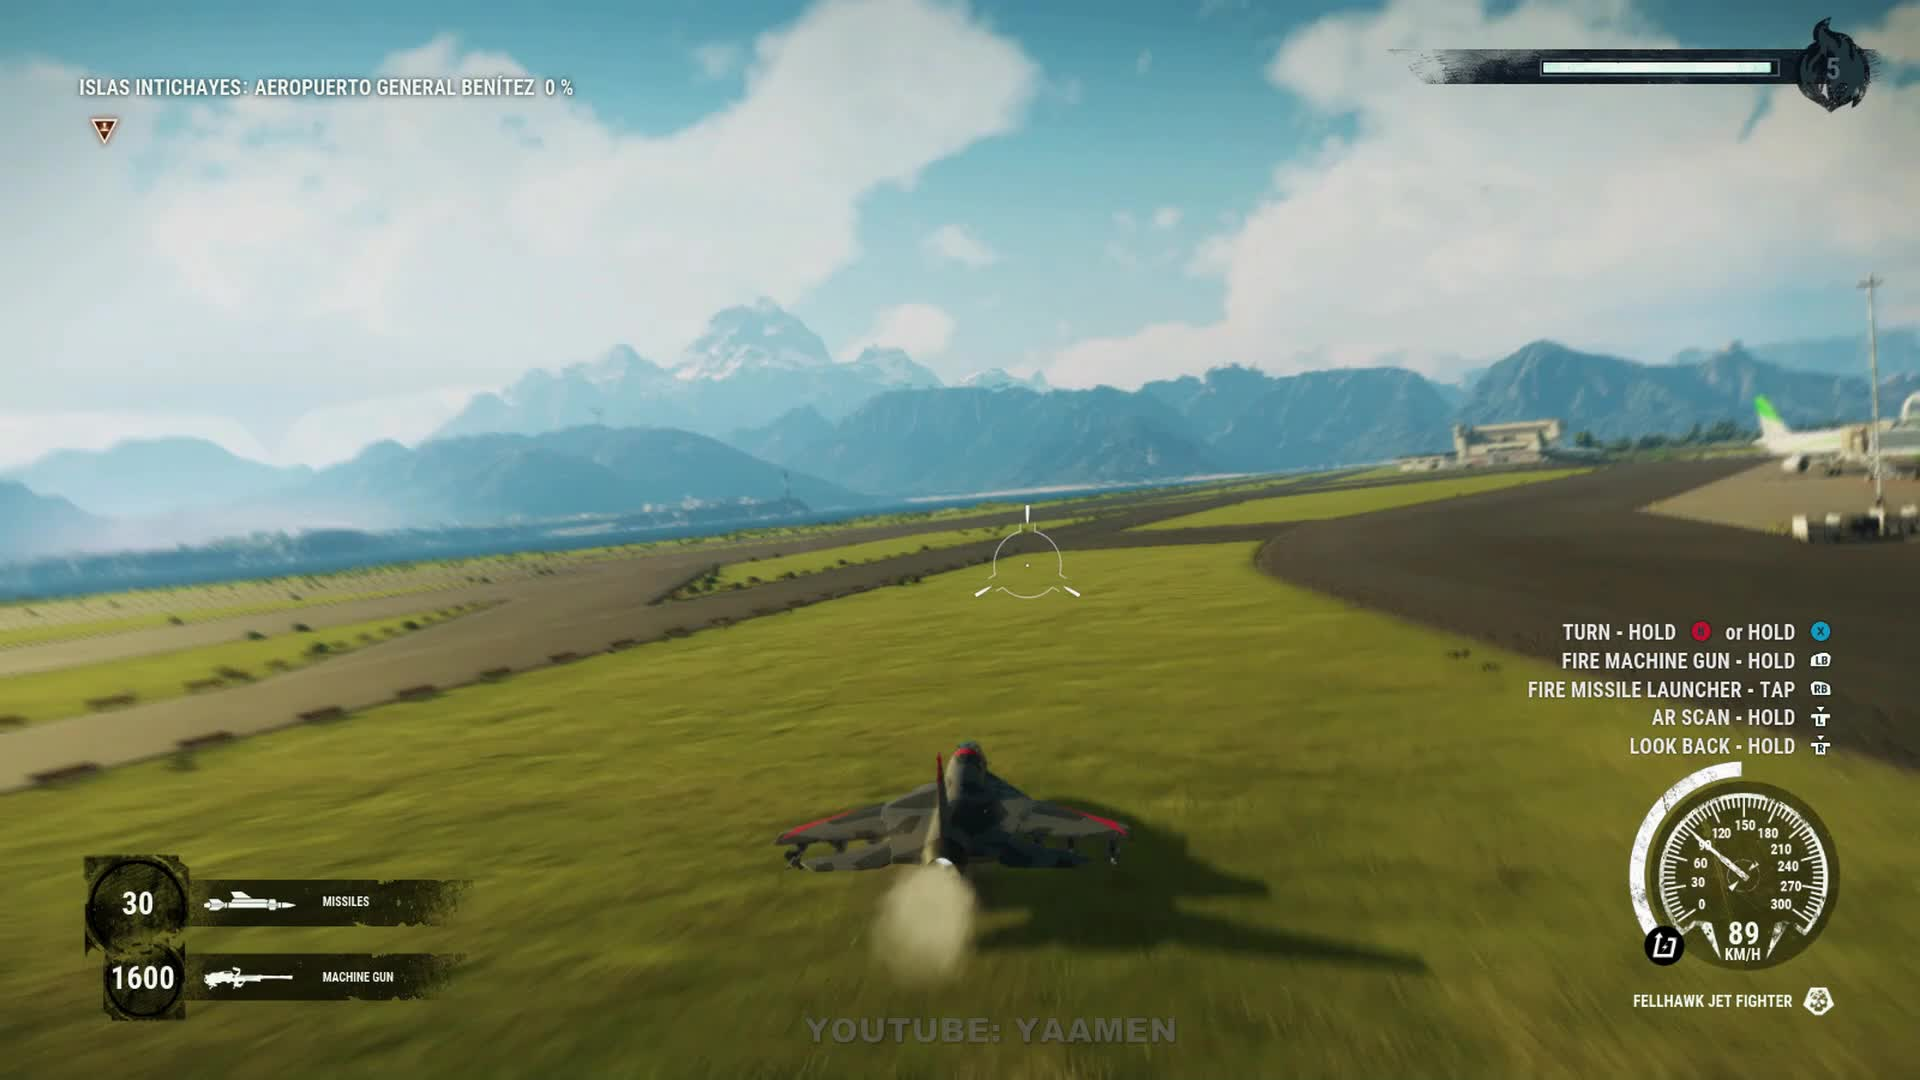 bug, flip, glitch, jet, just cause 4, square enix, JUST CAUSE 4 - FIGHTER JETS CAUSE ODD RESULTS AT AIRPORT GIFs